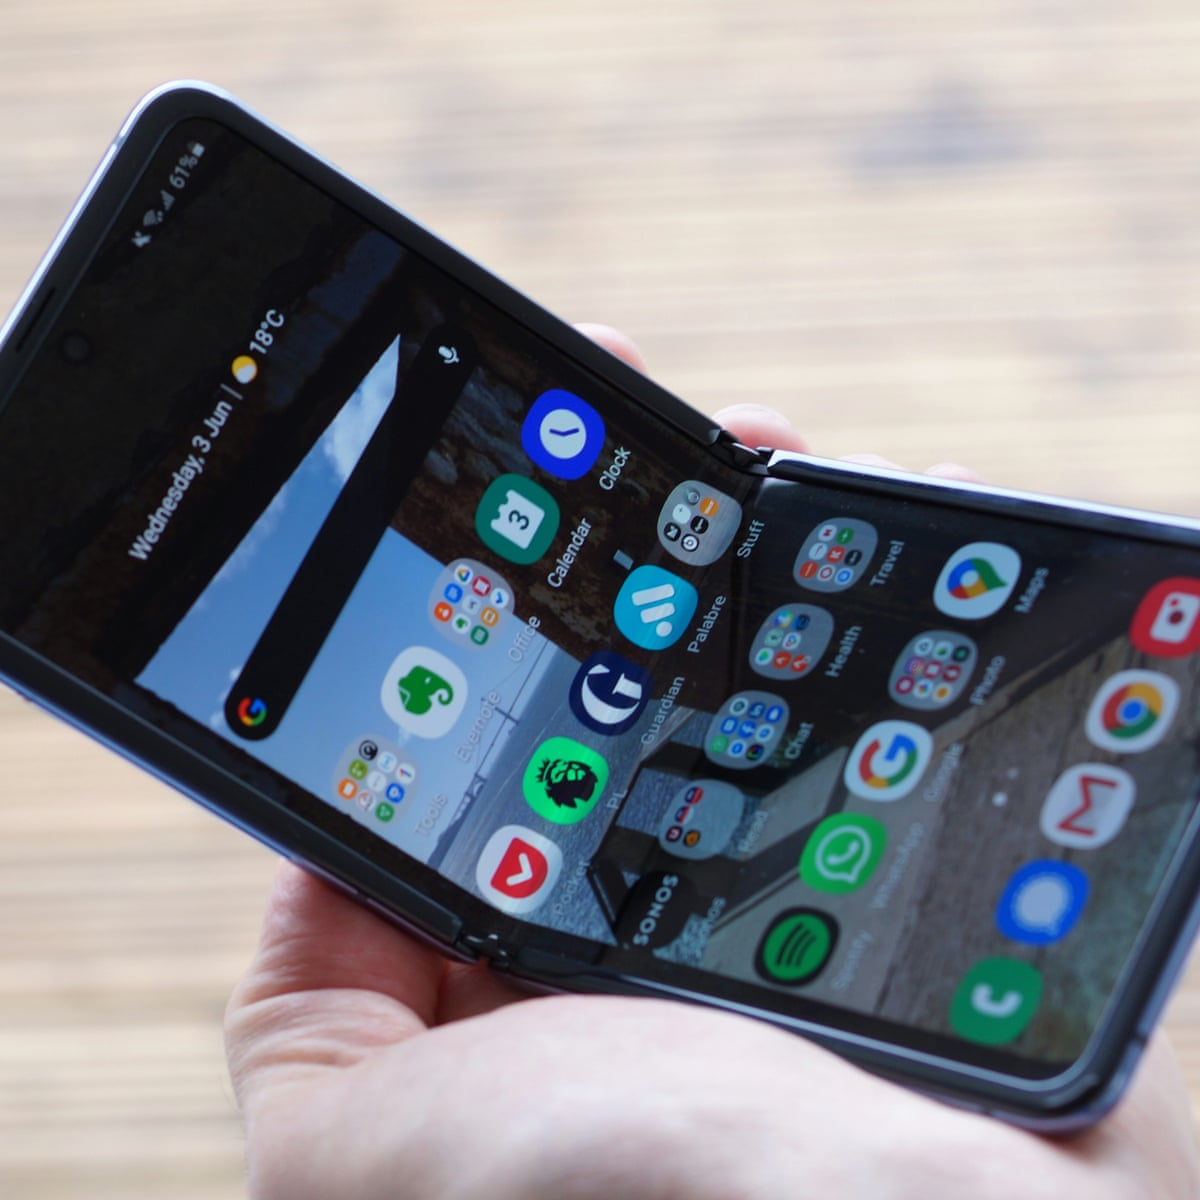 Samsung Galaxy Z Flip review: four months with the folding phone | Samsung  | The Guardian